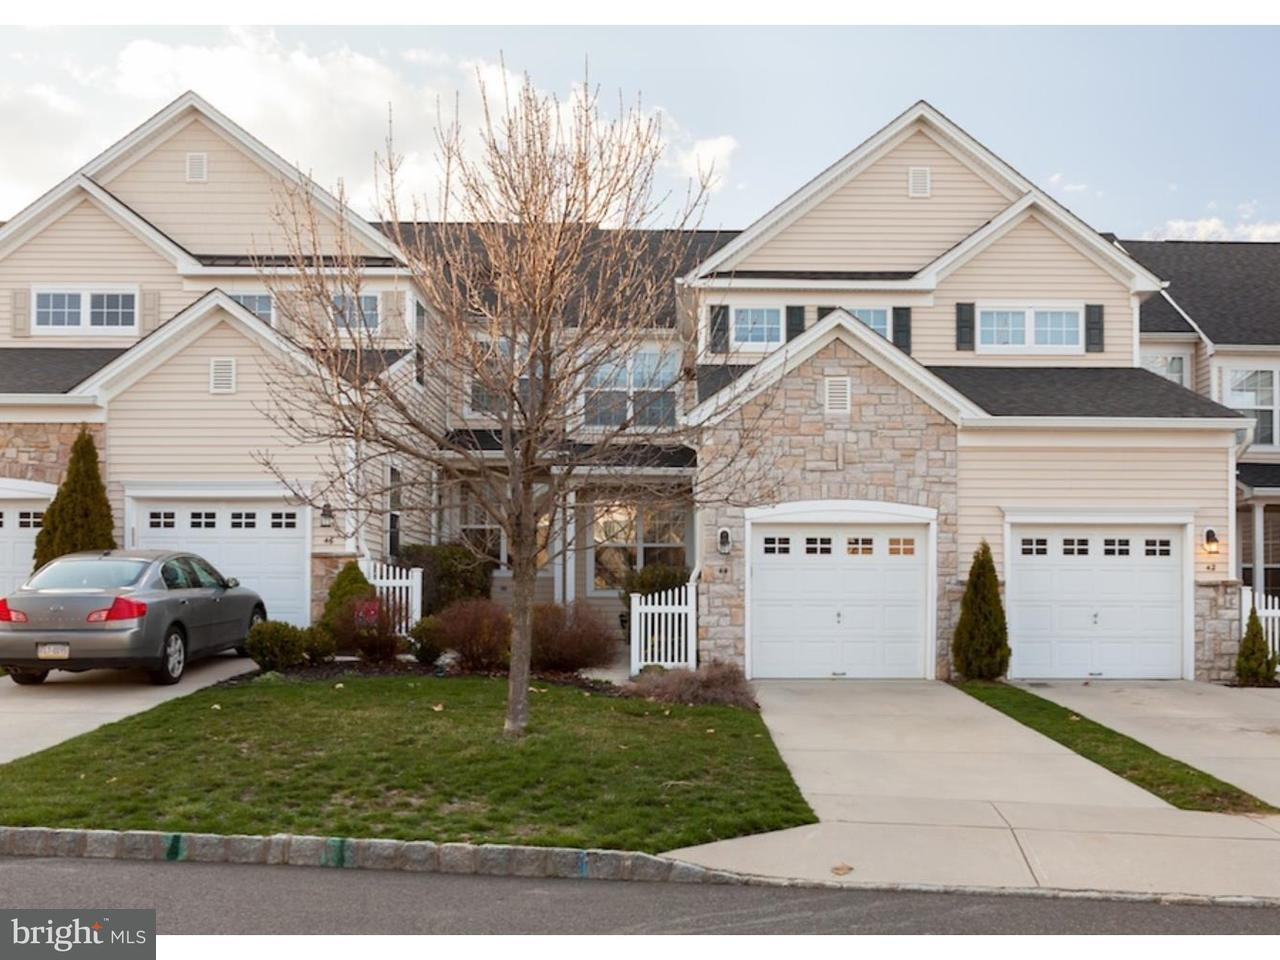 Townhouse for Sale at 44 STERN LIGHT Drive Mount Laurel, New Jersey 08054 United States